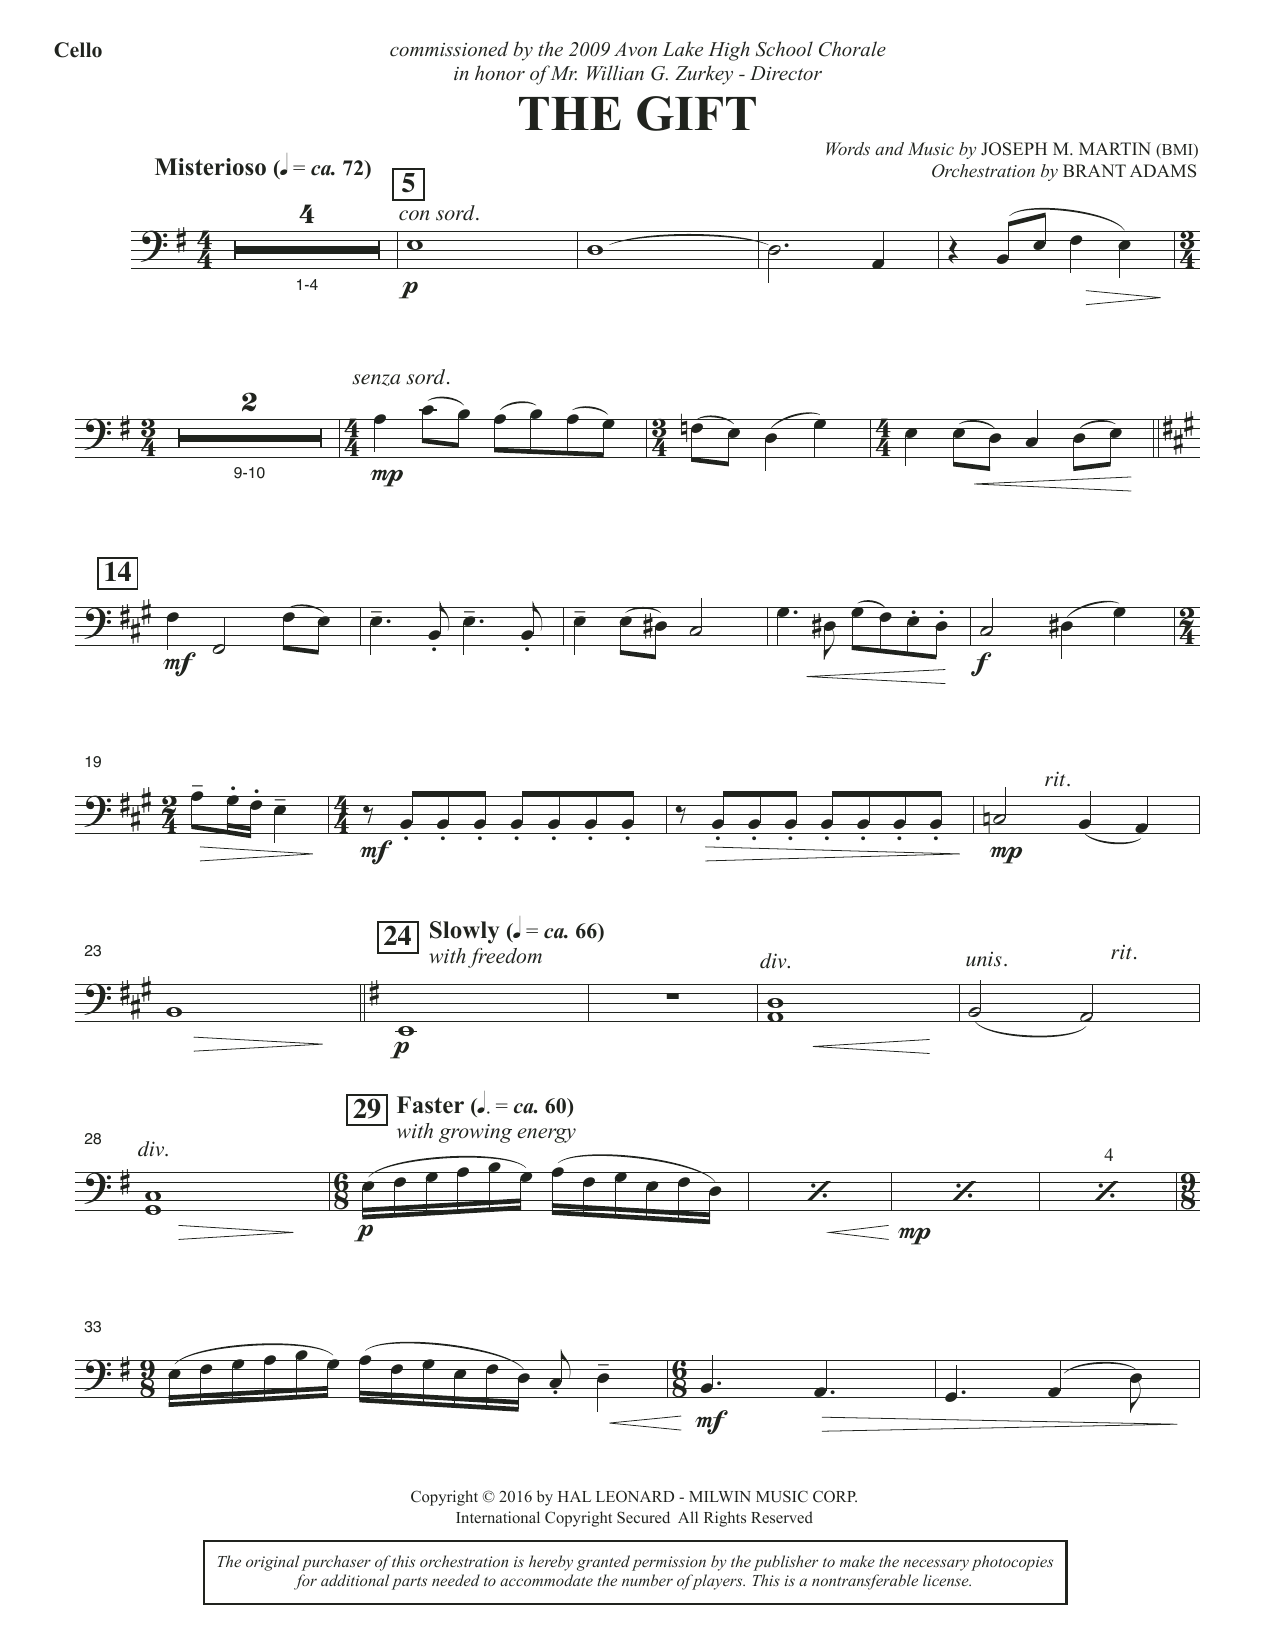 Joseph M. Martin The Gift - Cello sheet music notes and chords. Download Printable PDF.